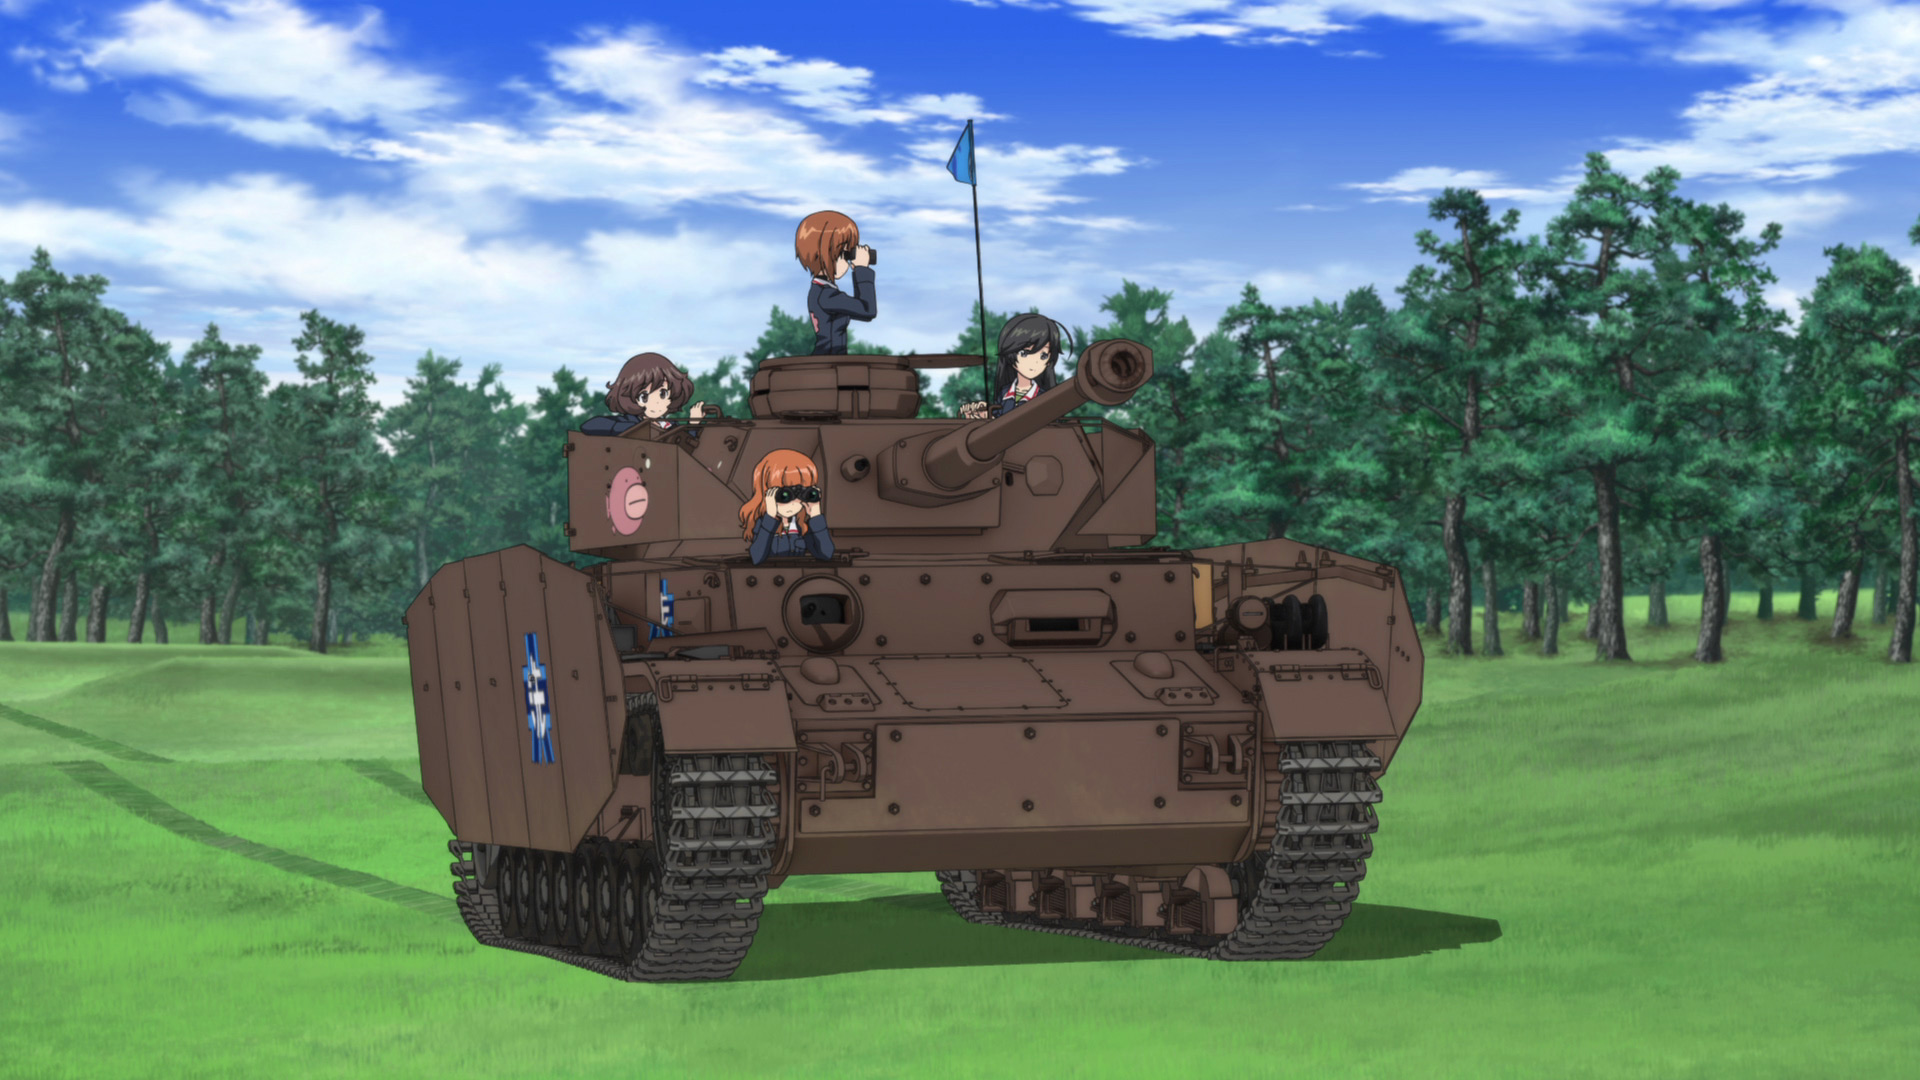 Amazing Girls Und Panzer Pictures & Backgrounds